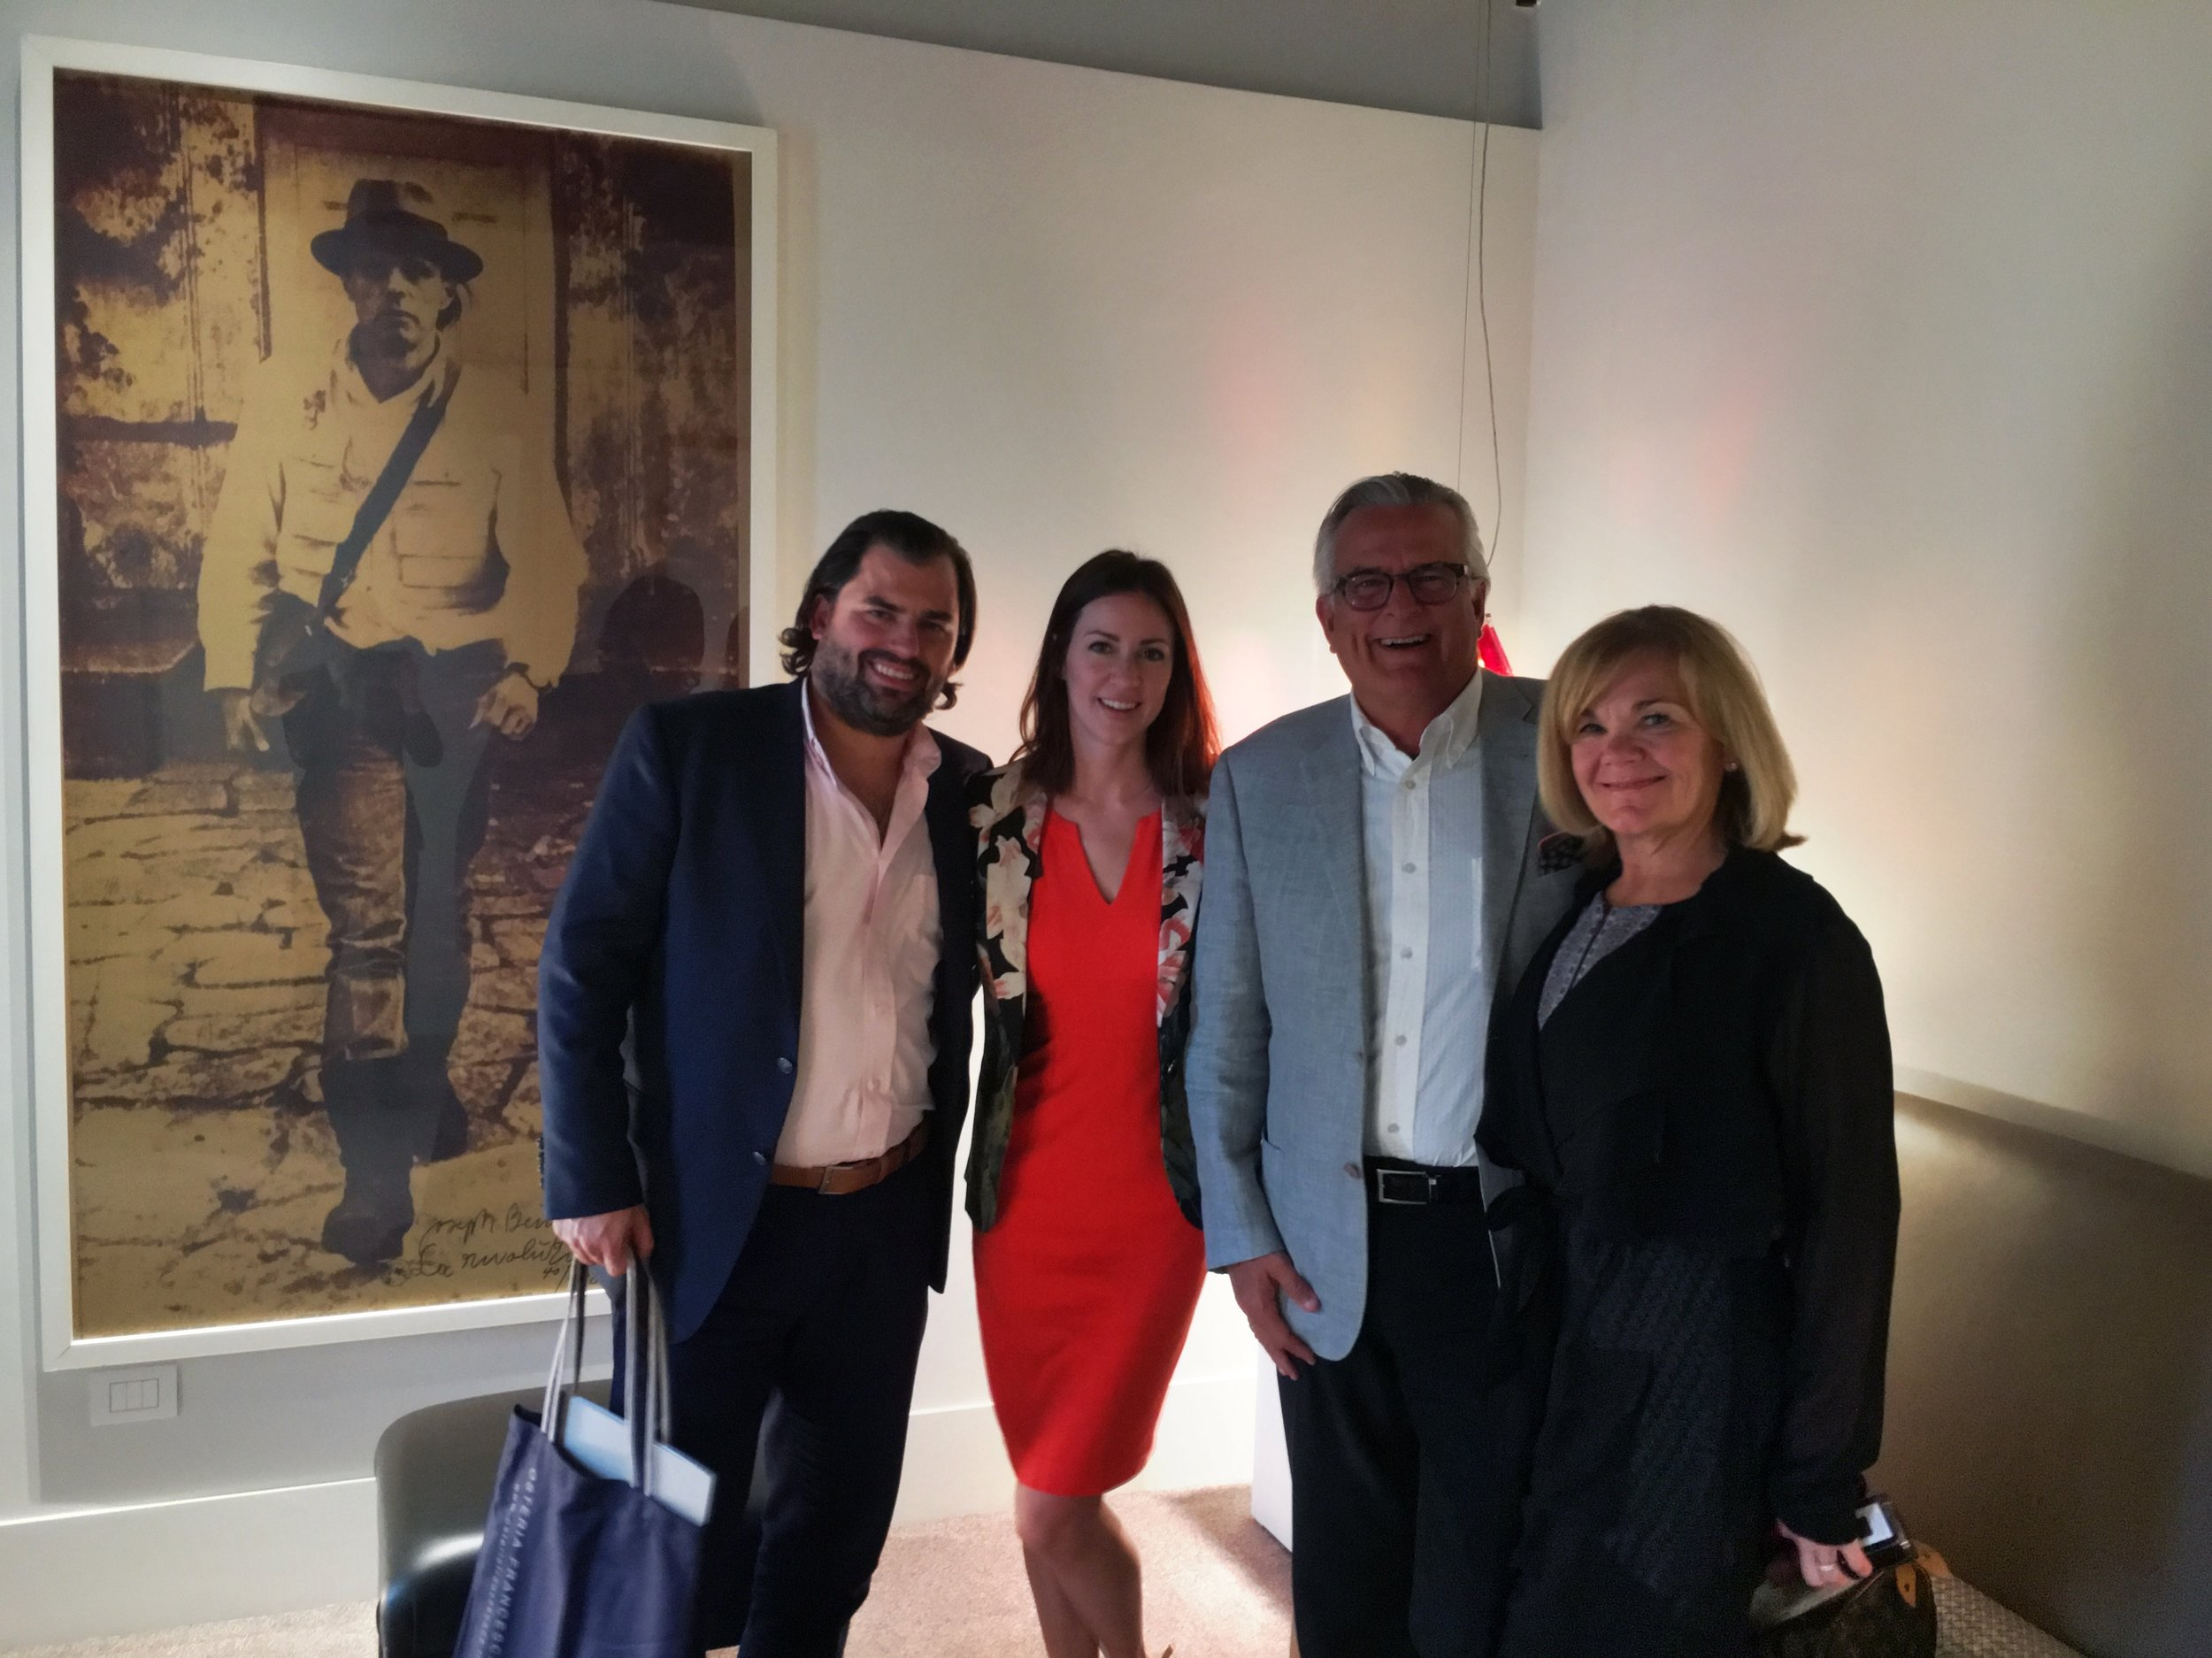 Chef Nick Strawhecker with his wife Michelle and parents on an Italian adventure.